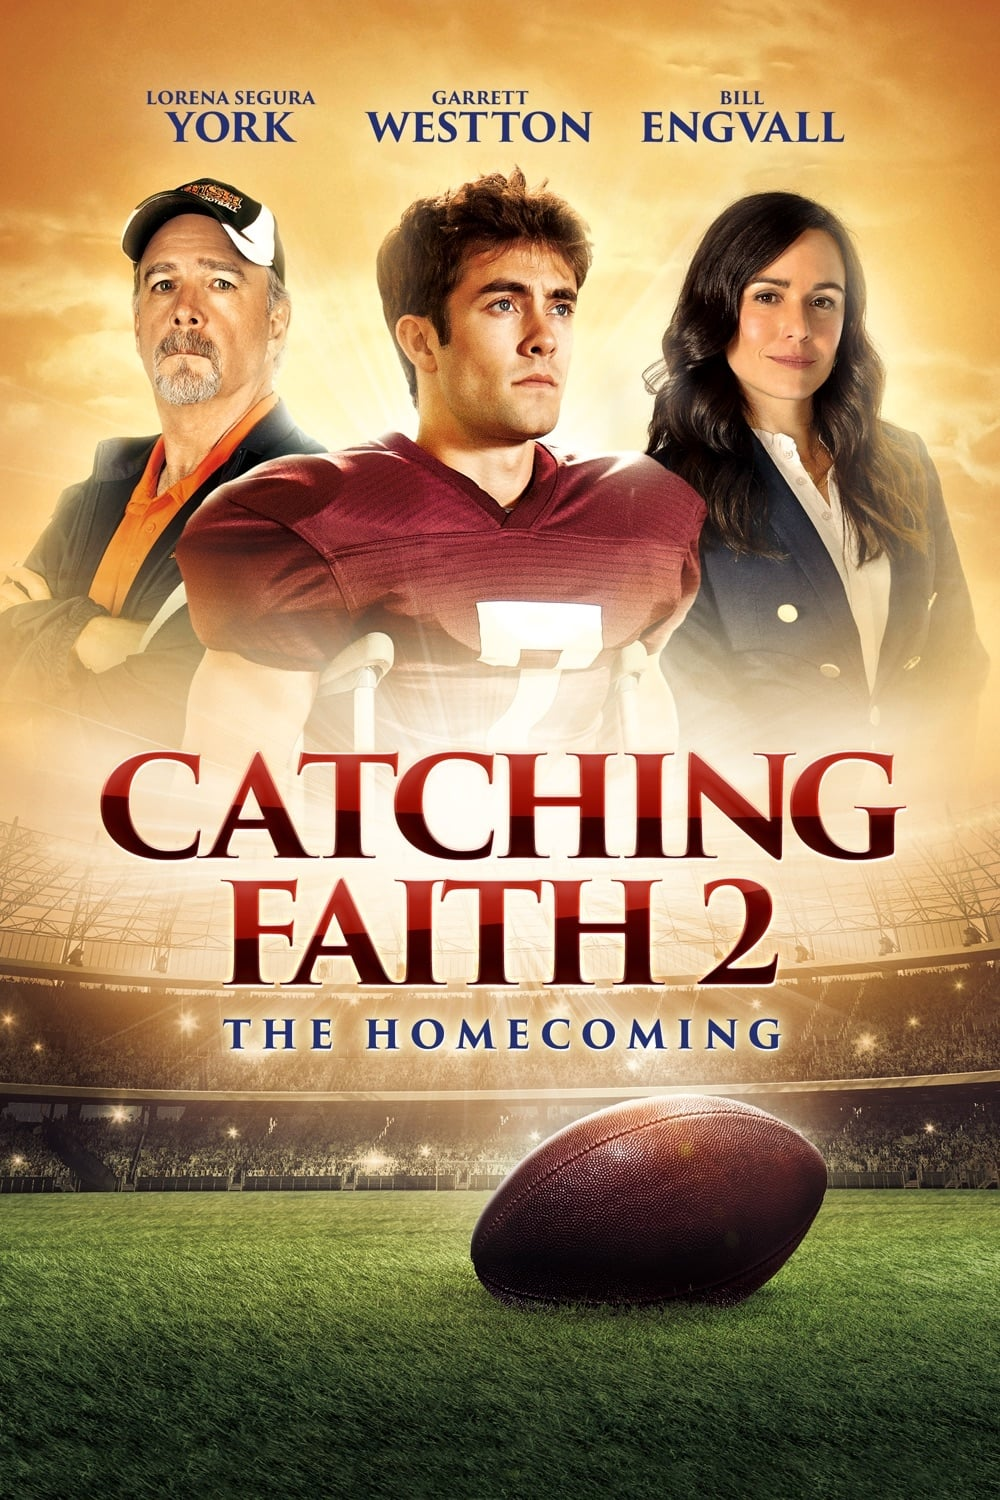 thumb Catching Faith 2: The Homecoming